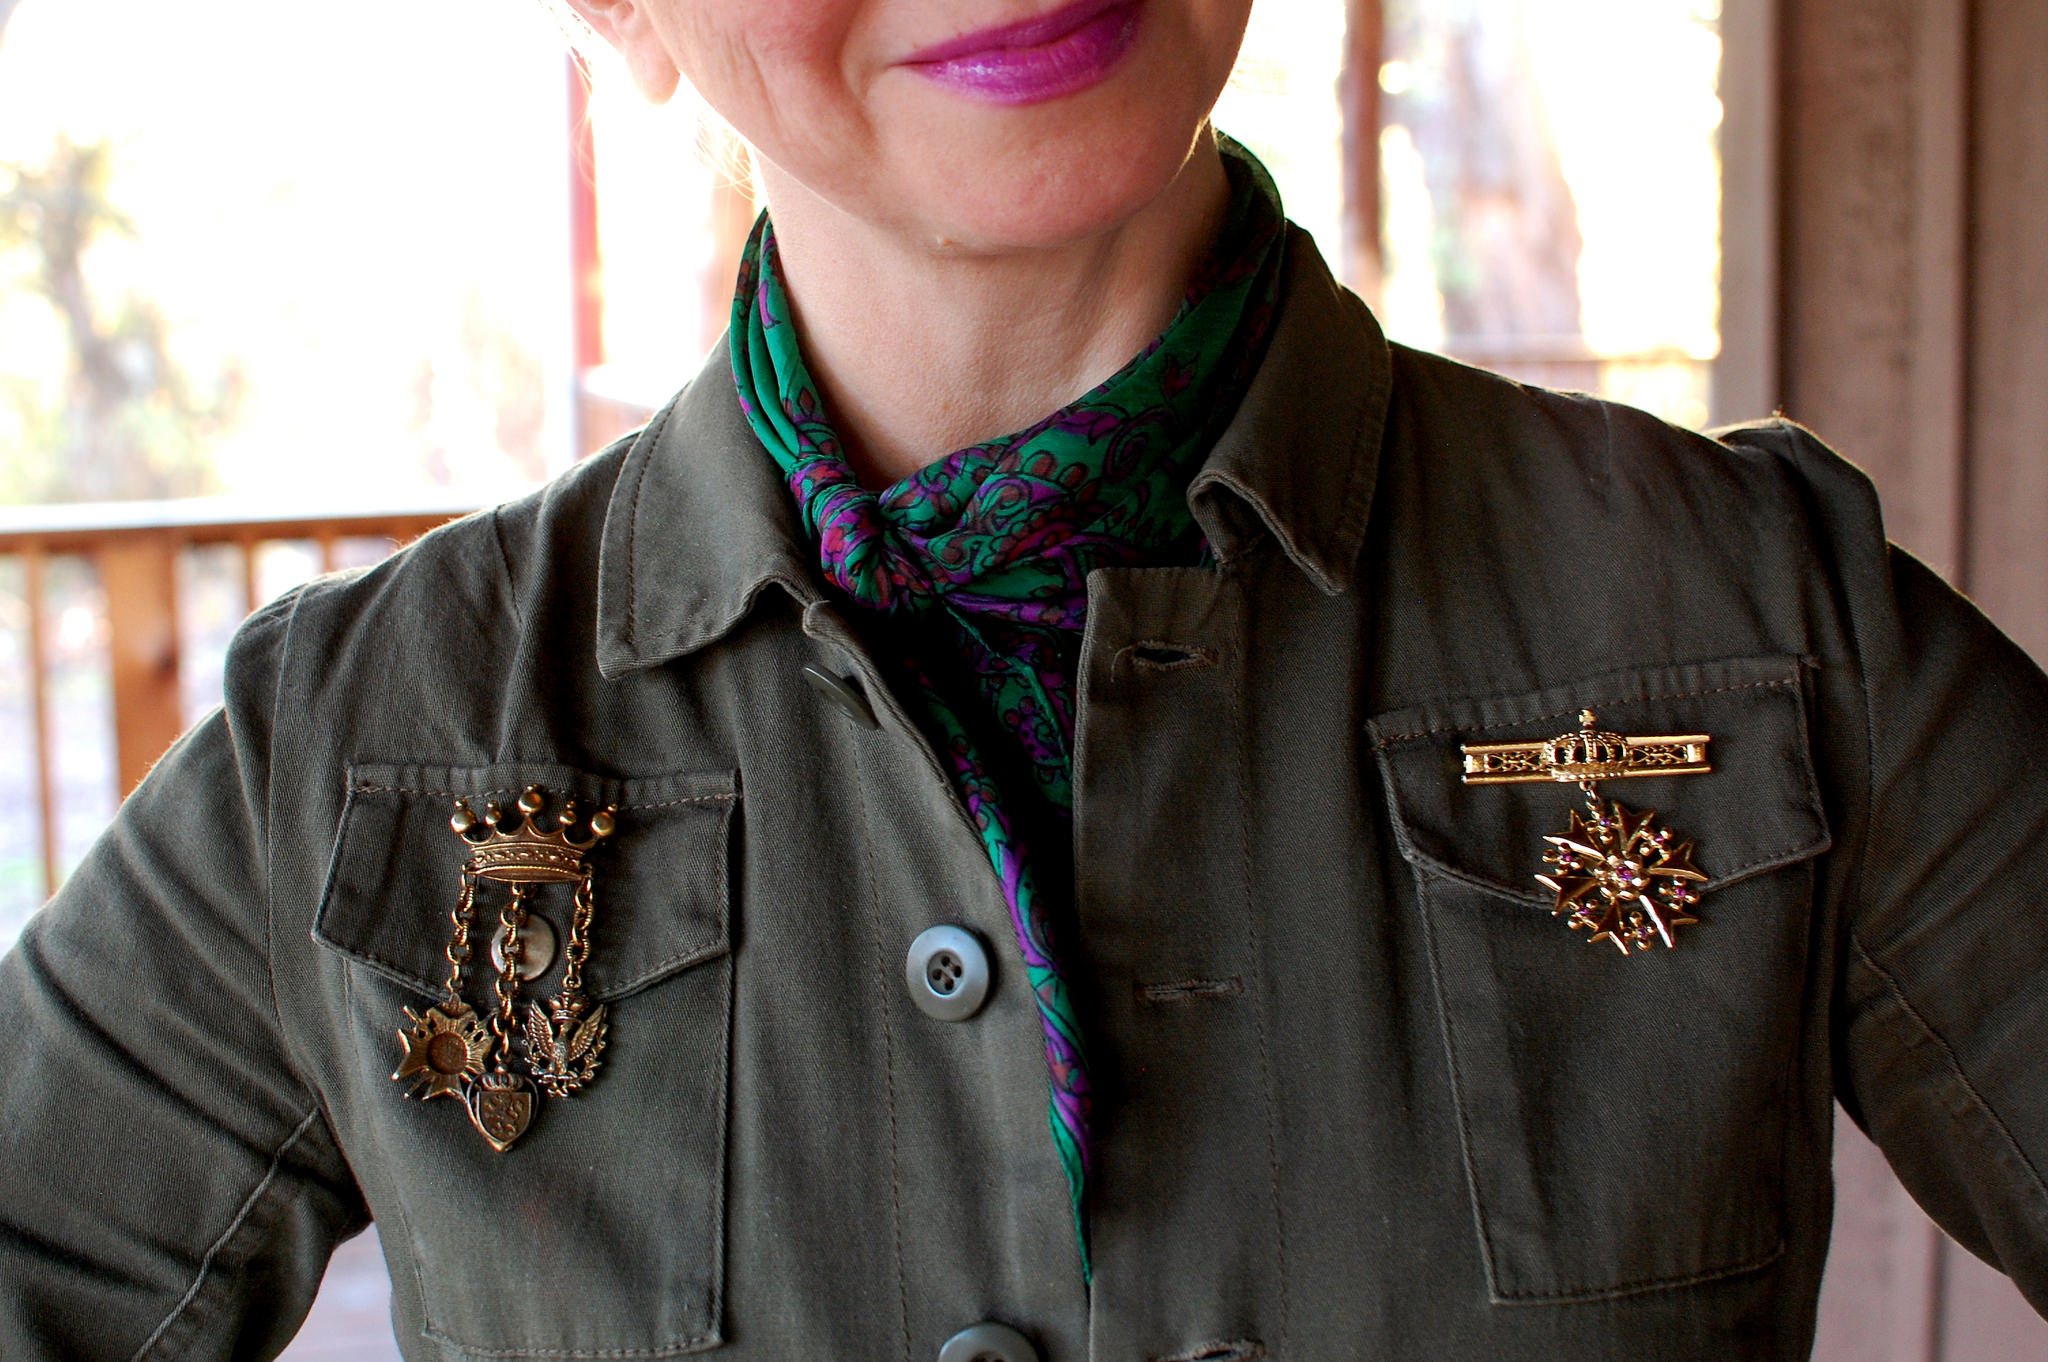 daily outfit blog olive jacket faux military medal brooch neck scarf daily outfit blog ootd whatiwore2day